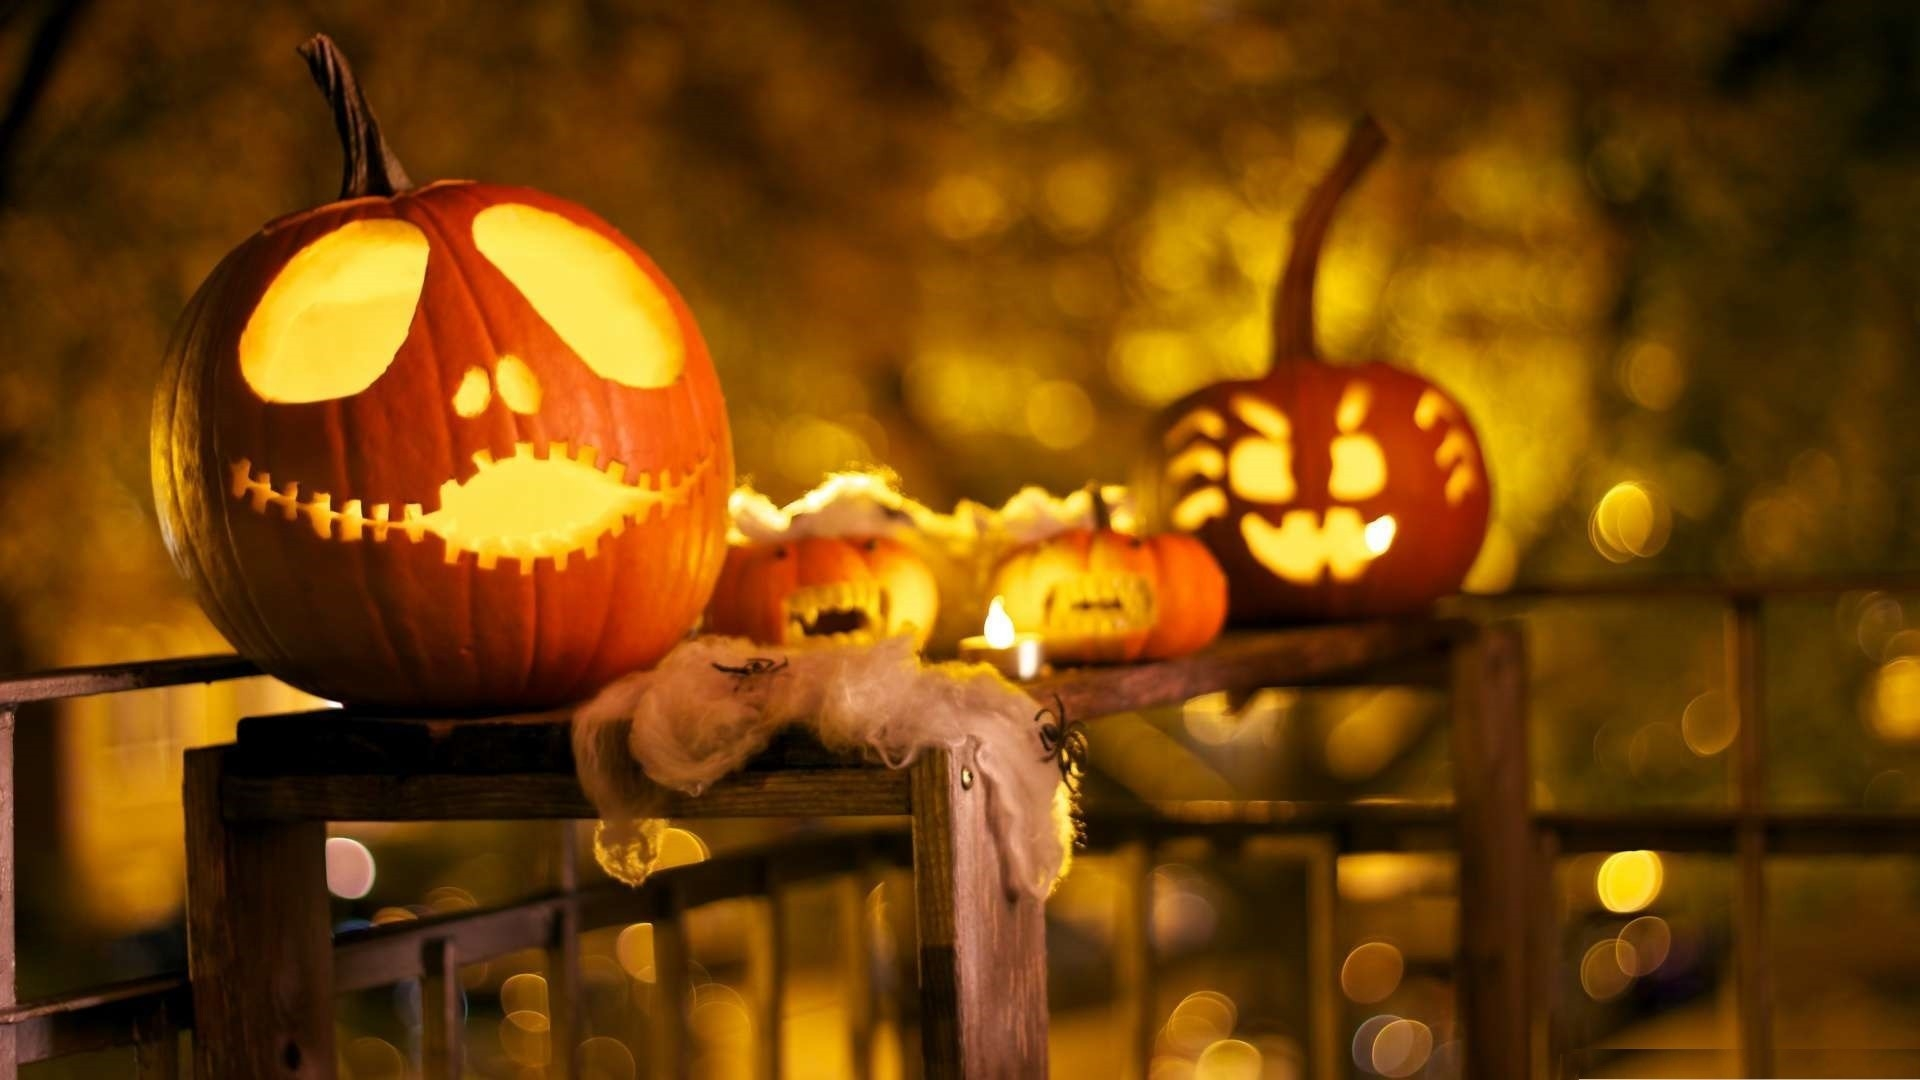 Nowadays, the pumpkin has become the main symbol of Halloween